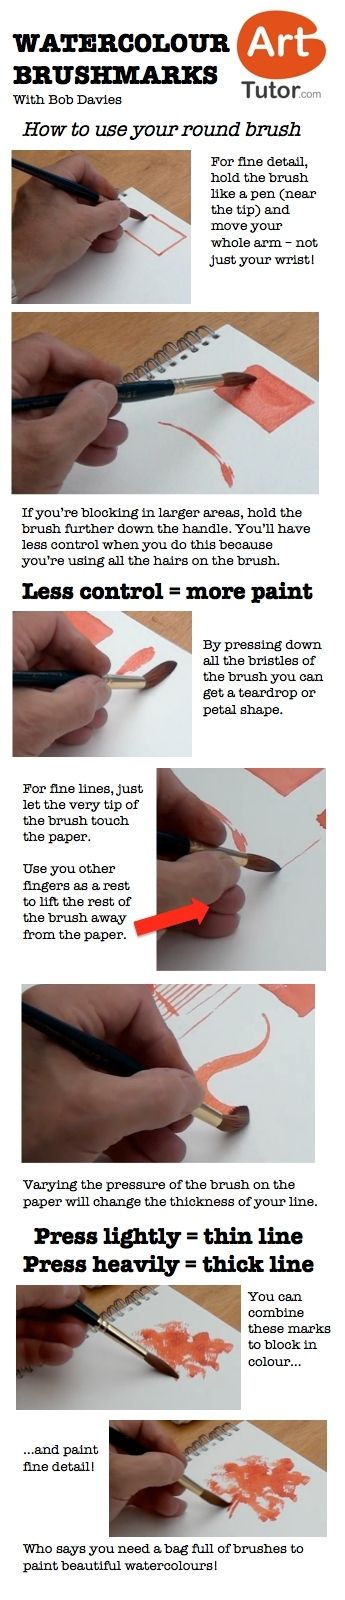 How to use your round brush in watercolour. For more watercolour tips and techniques, and to see the video of this lesson, go to www.arttutor.com/blog #watercolour